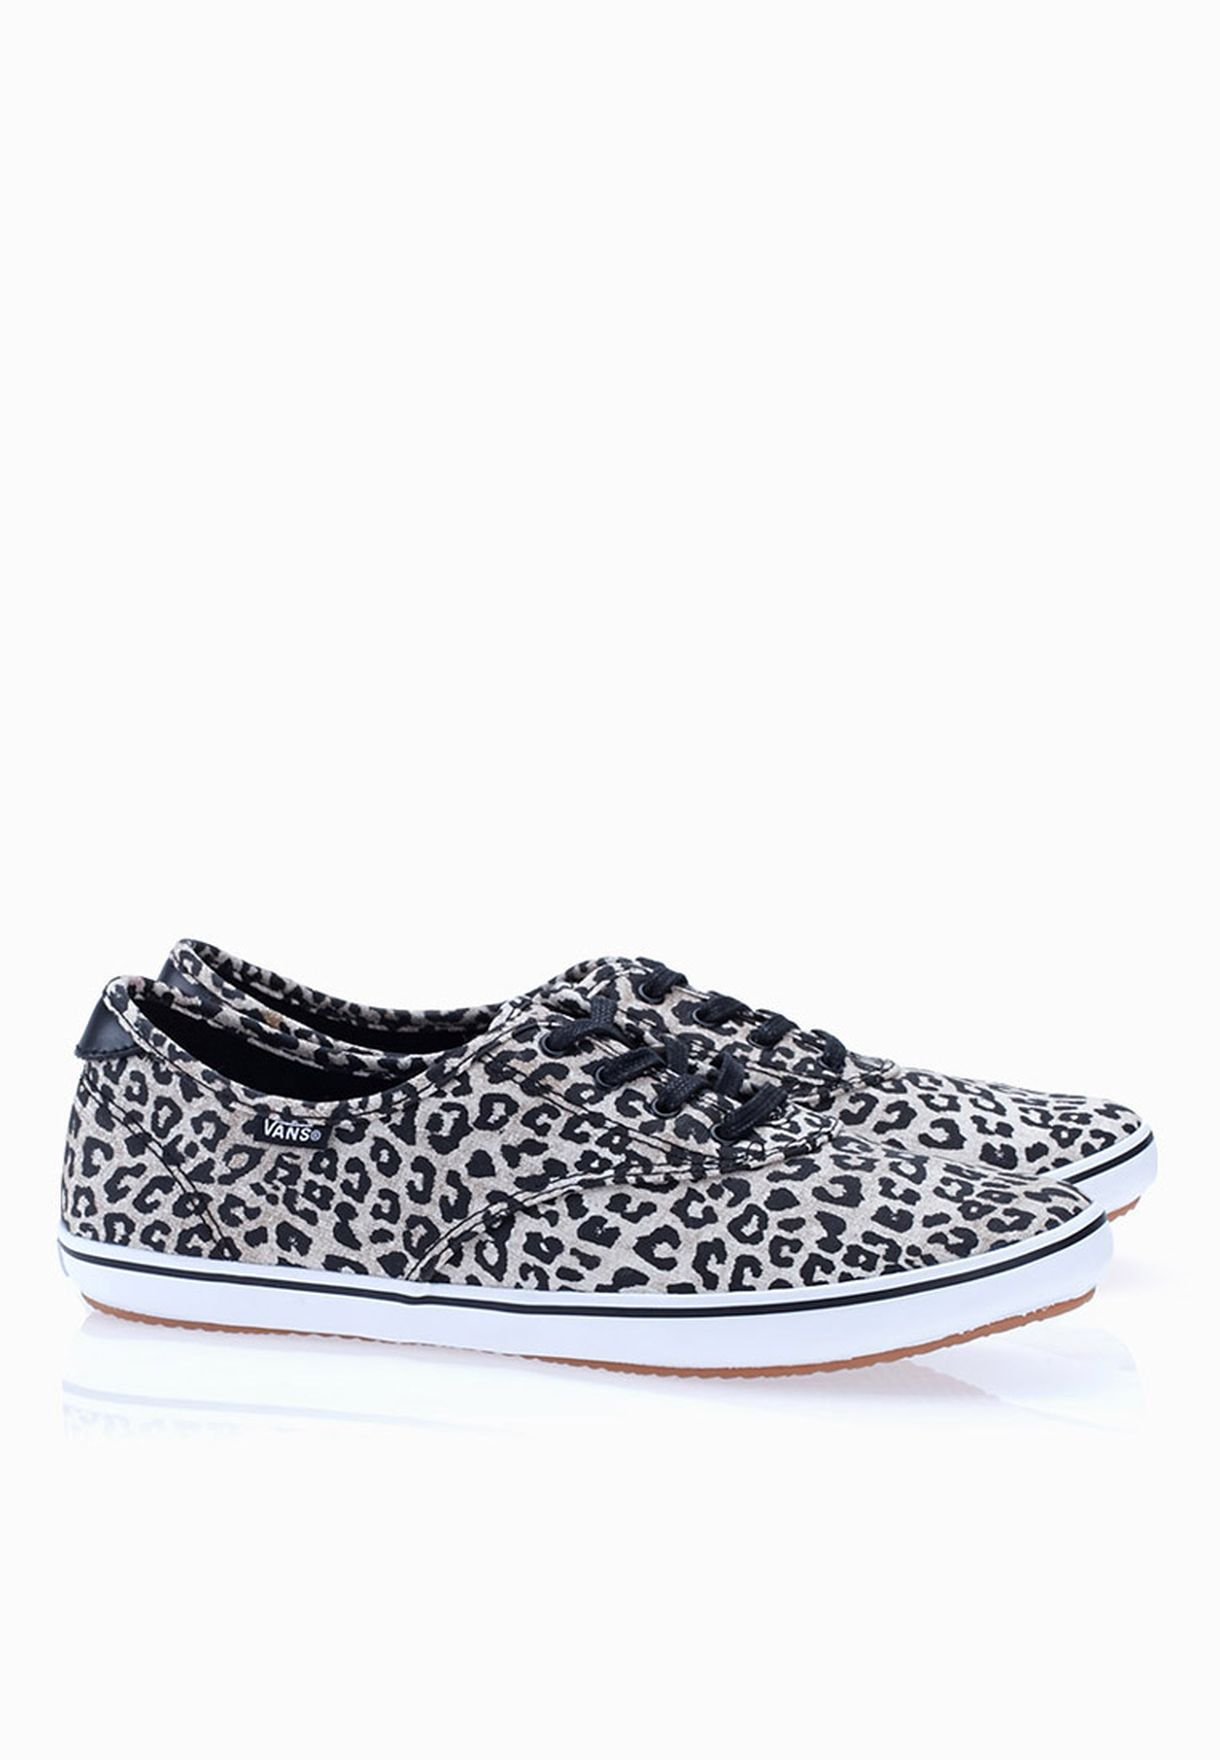 5c22ed7b9b Shop Vans animalprint Huntley Sneakers for Women in Oman - VA088SH34PYV